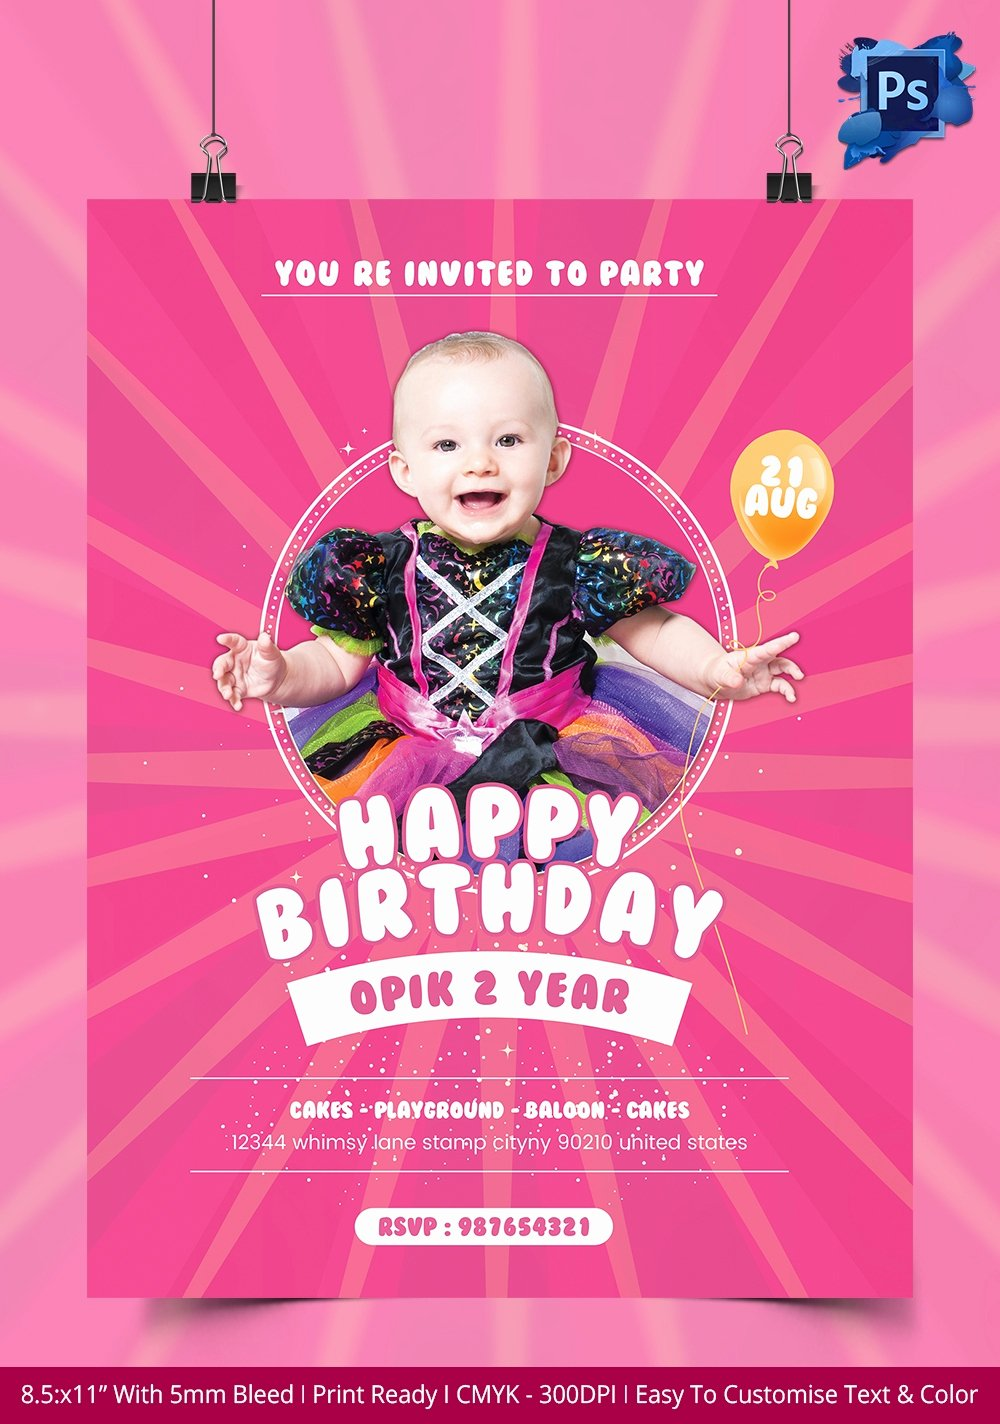 Birthday Party Flyer Templates Free Unique 135 Psd Flyer Templates – Free Psd Eps Ai Indesign format Download